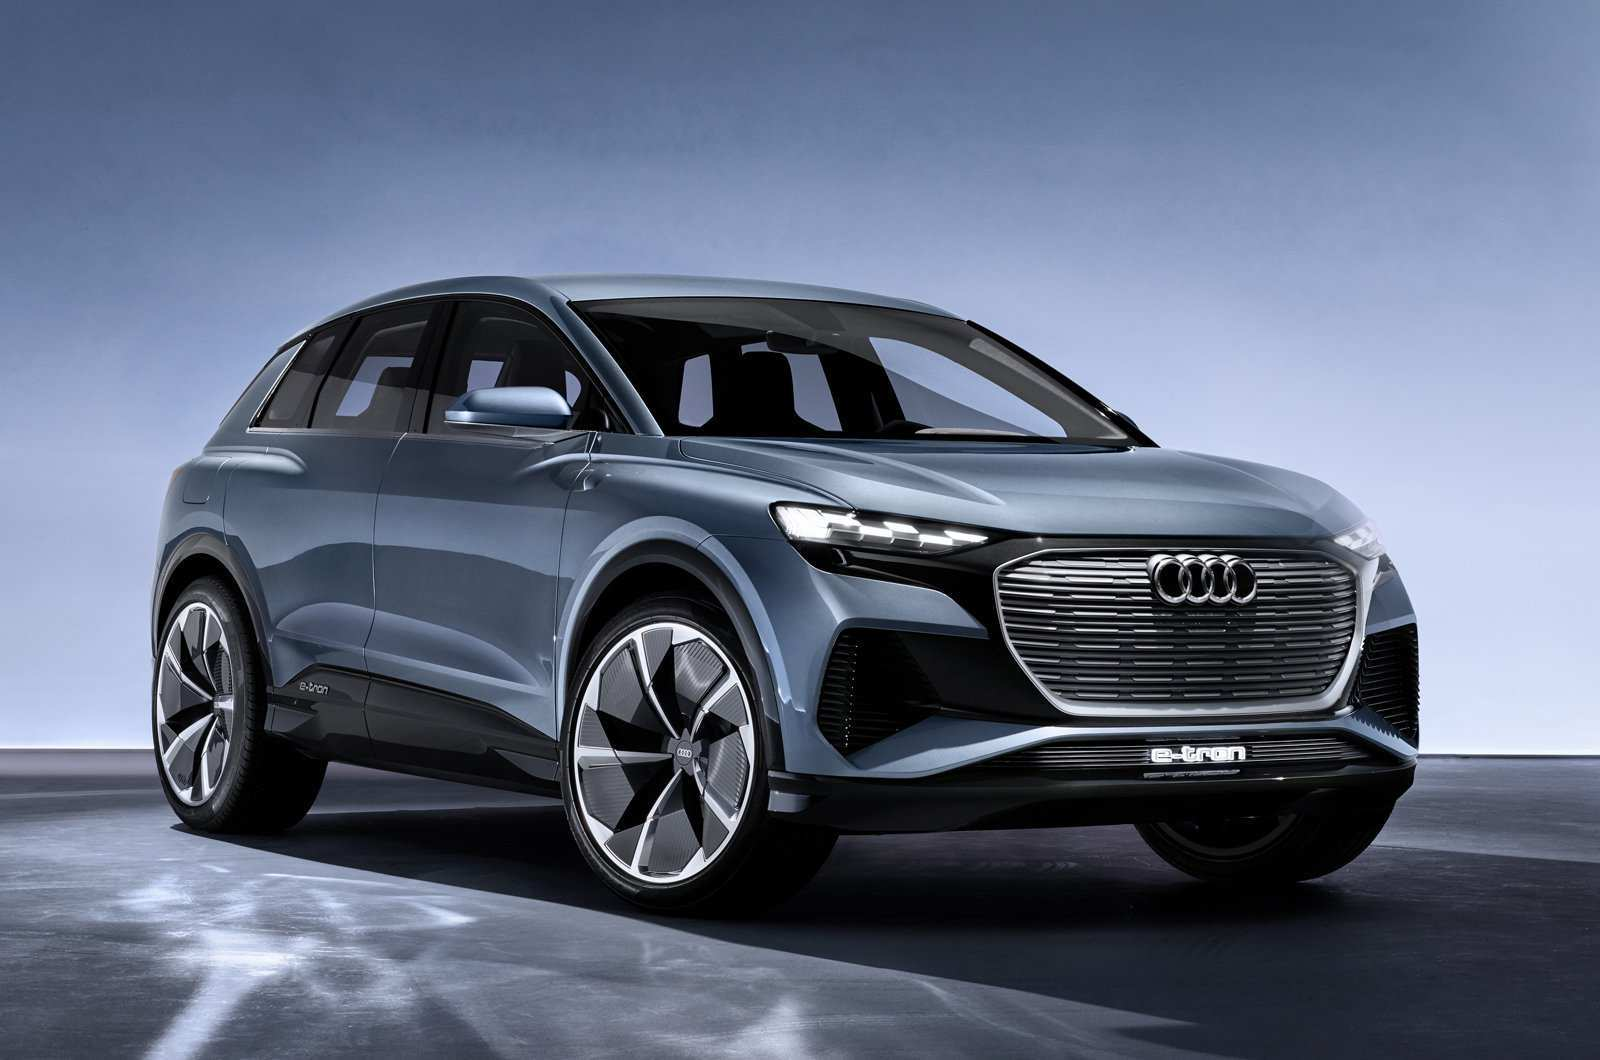 70 All New Audi New Suv 2020 New Concept